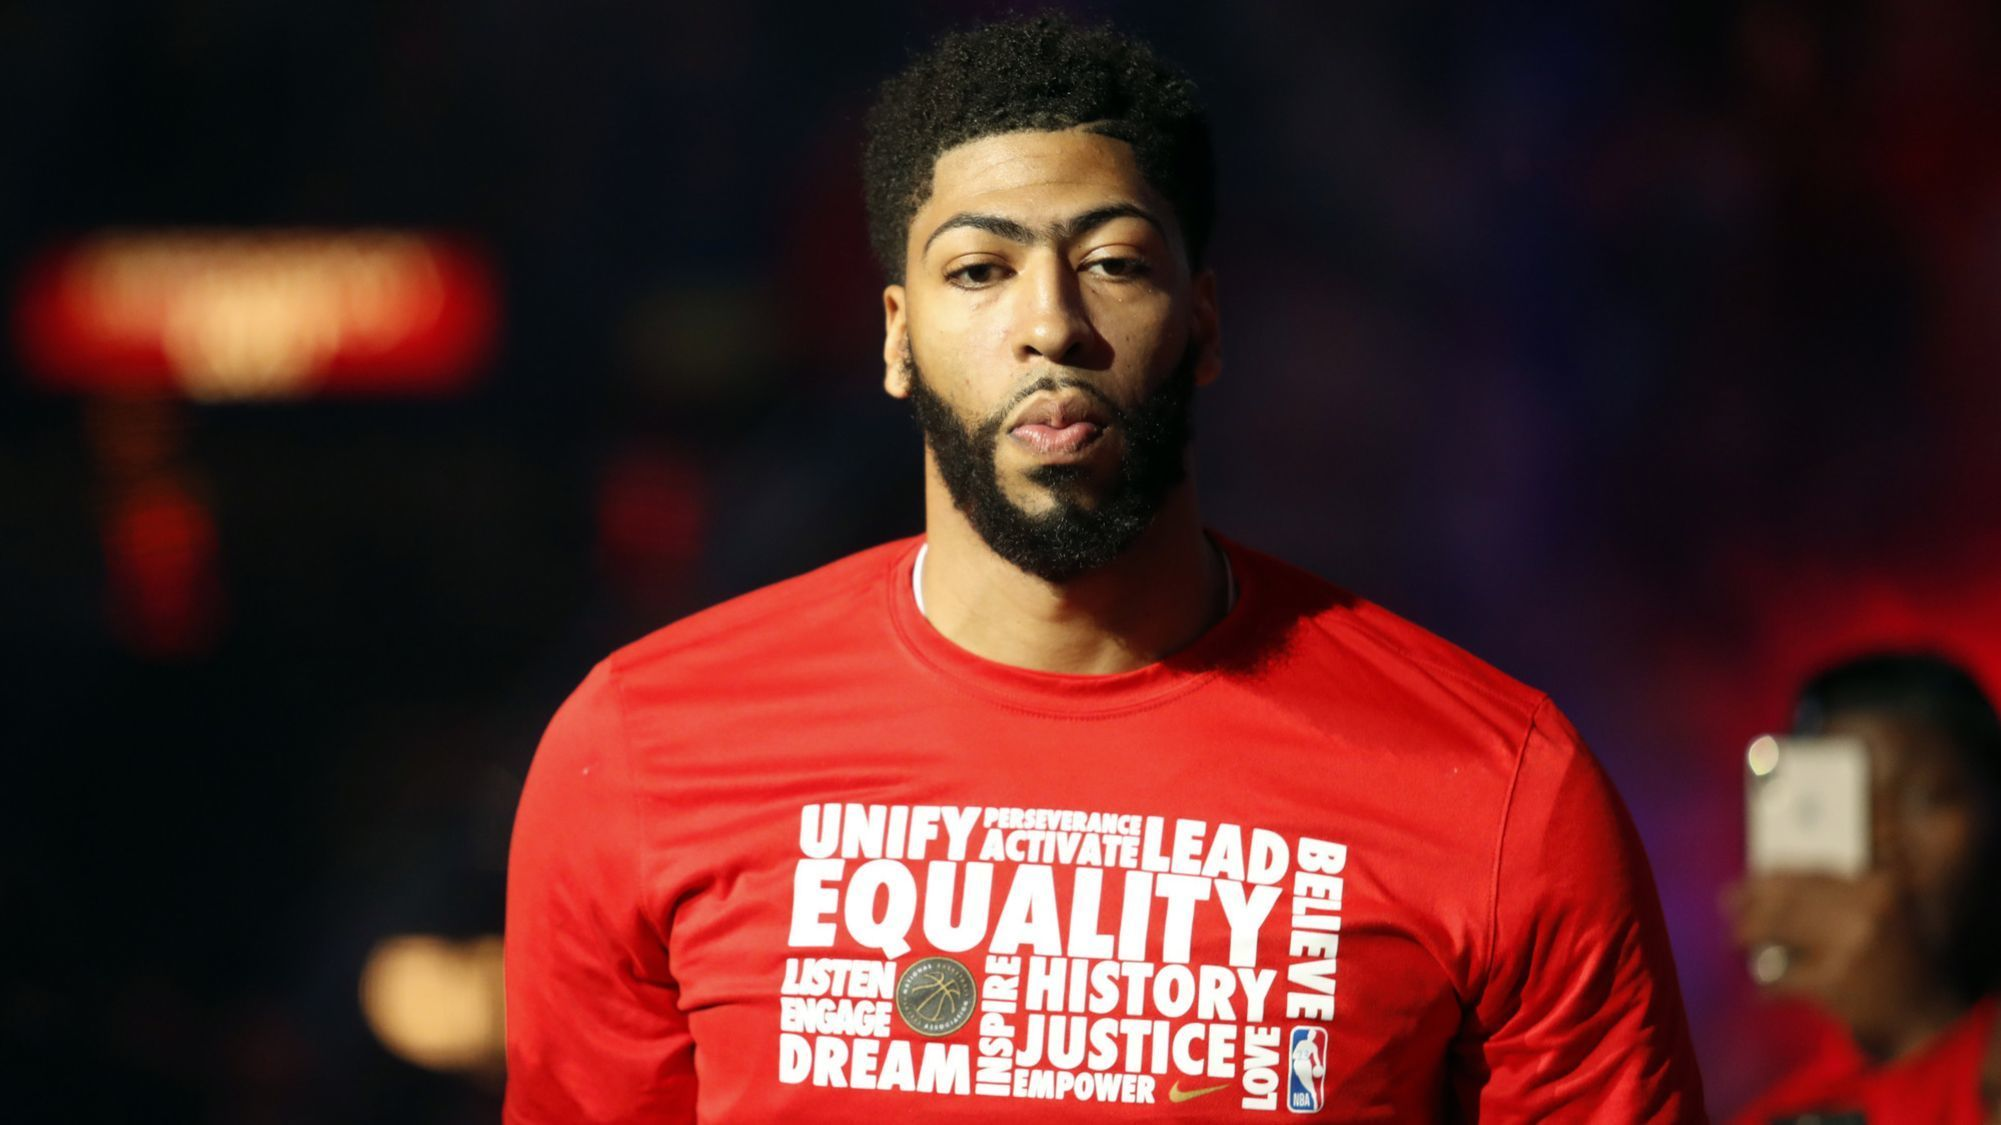 Anthony Davis is coming to the Lakers in a trade